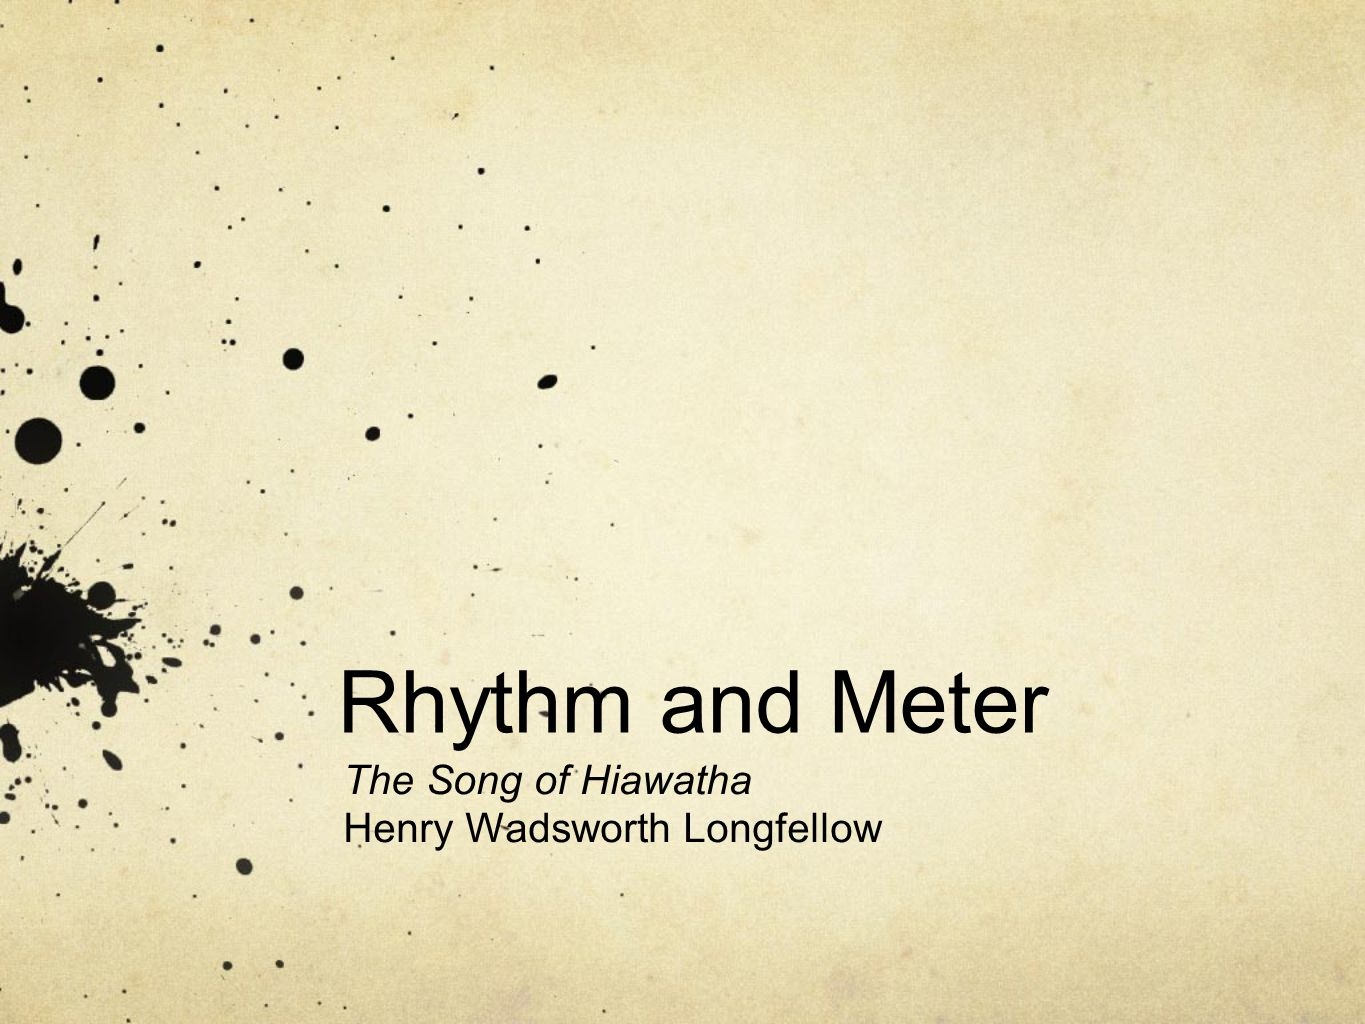 rhythm and meter the song of hiawatha henry wadsworth longfellow  1 rhythm and meter the song of hiawatha henry wadsworth longfellow